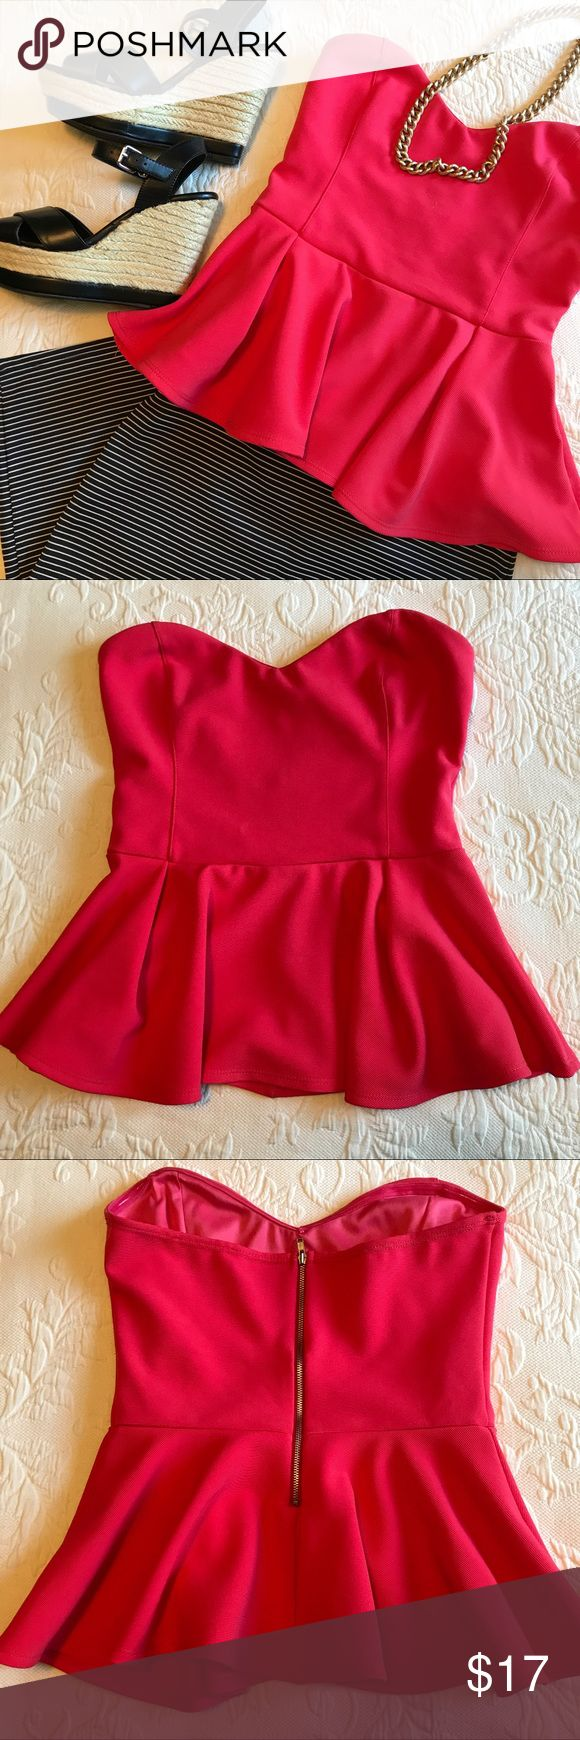 Lush • Red Strapless Peplum Top Bright color - perfect for a night out!! Lush Tops Blouses